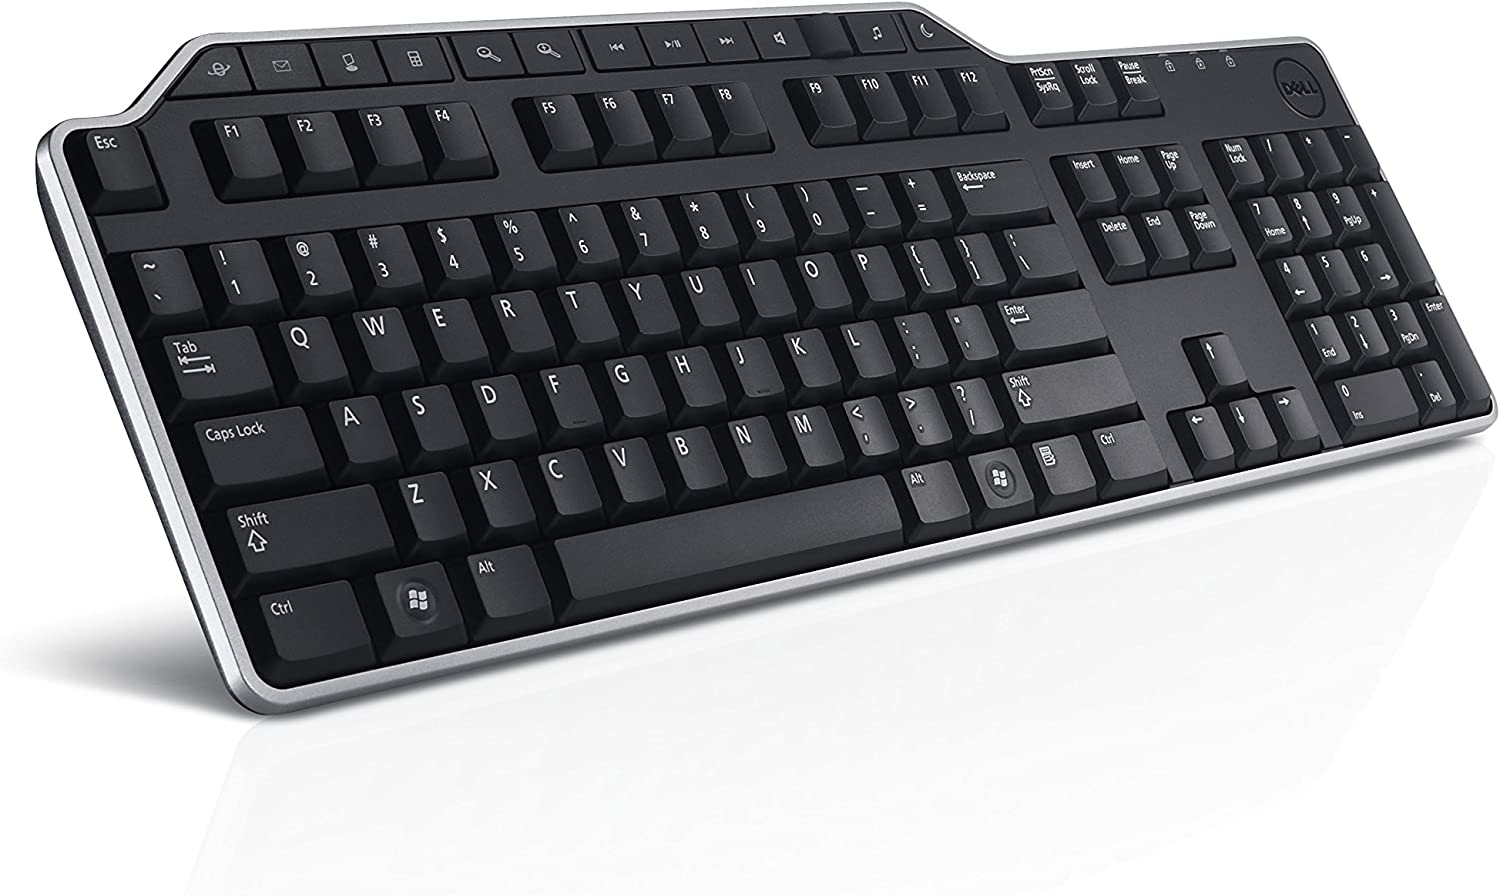 Dell Business Multimedia Keyboard - KB522, Black